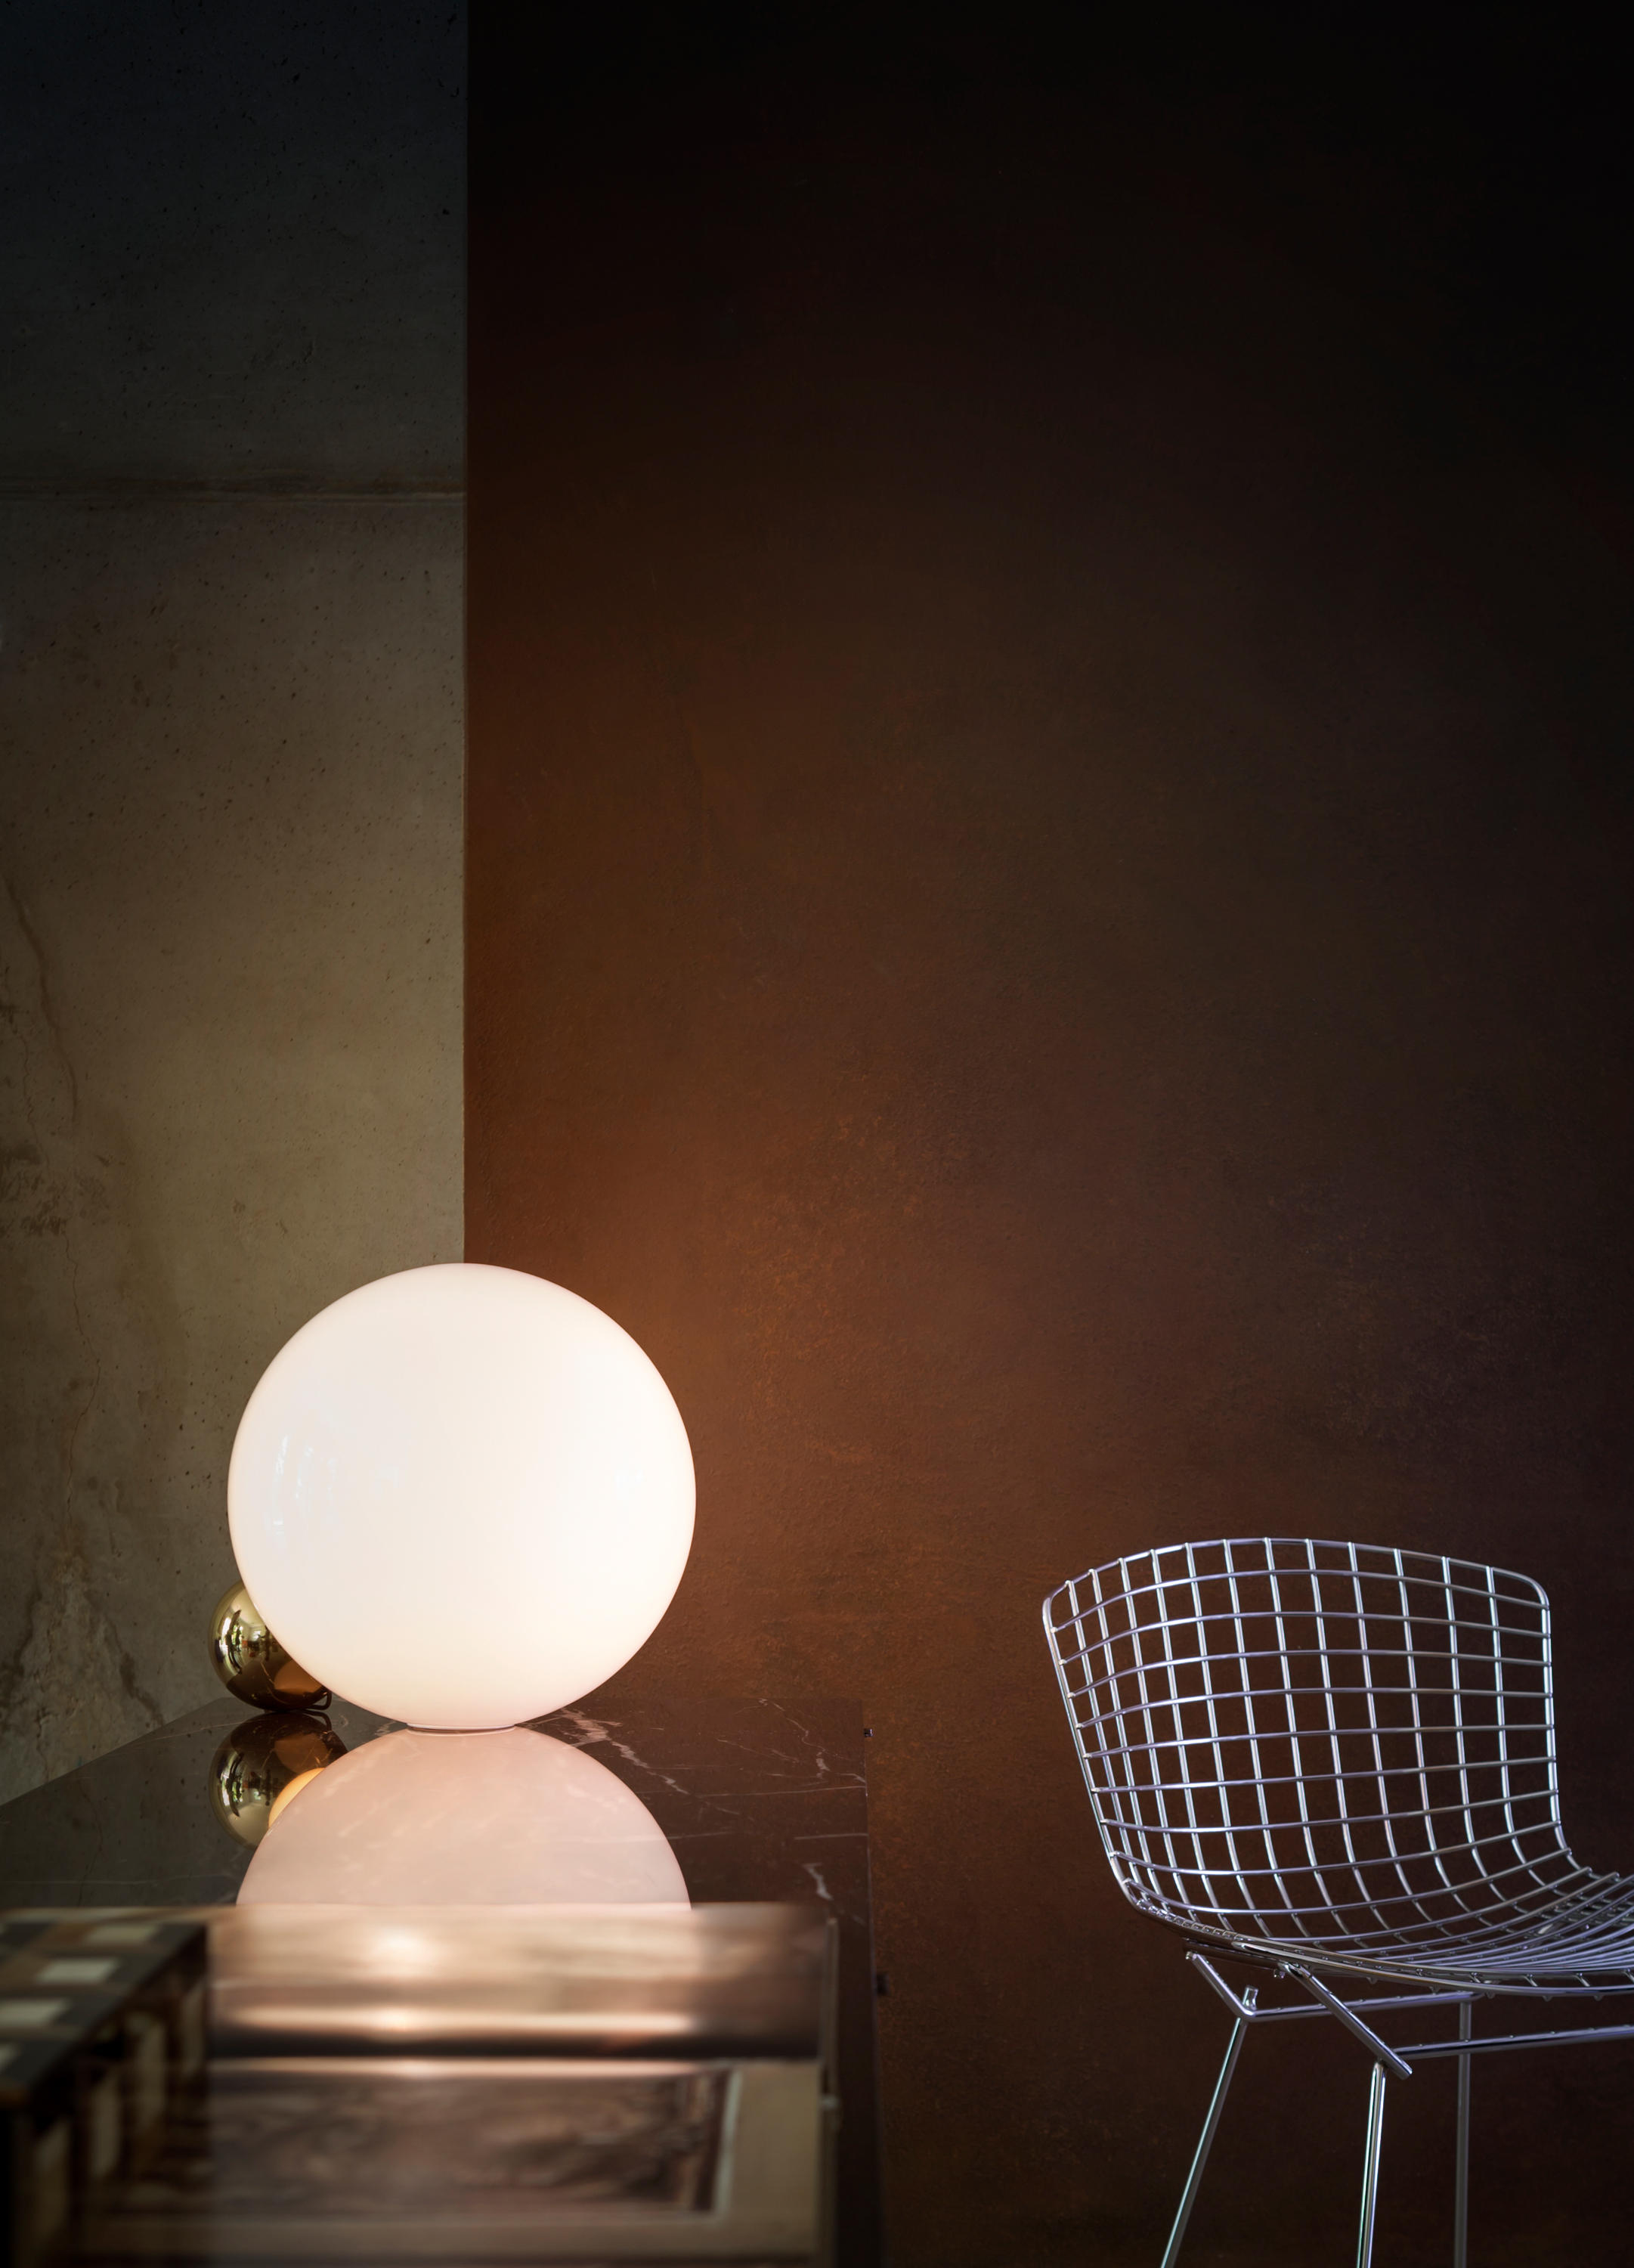 Copycat General Lighting From Flos Architonic